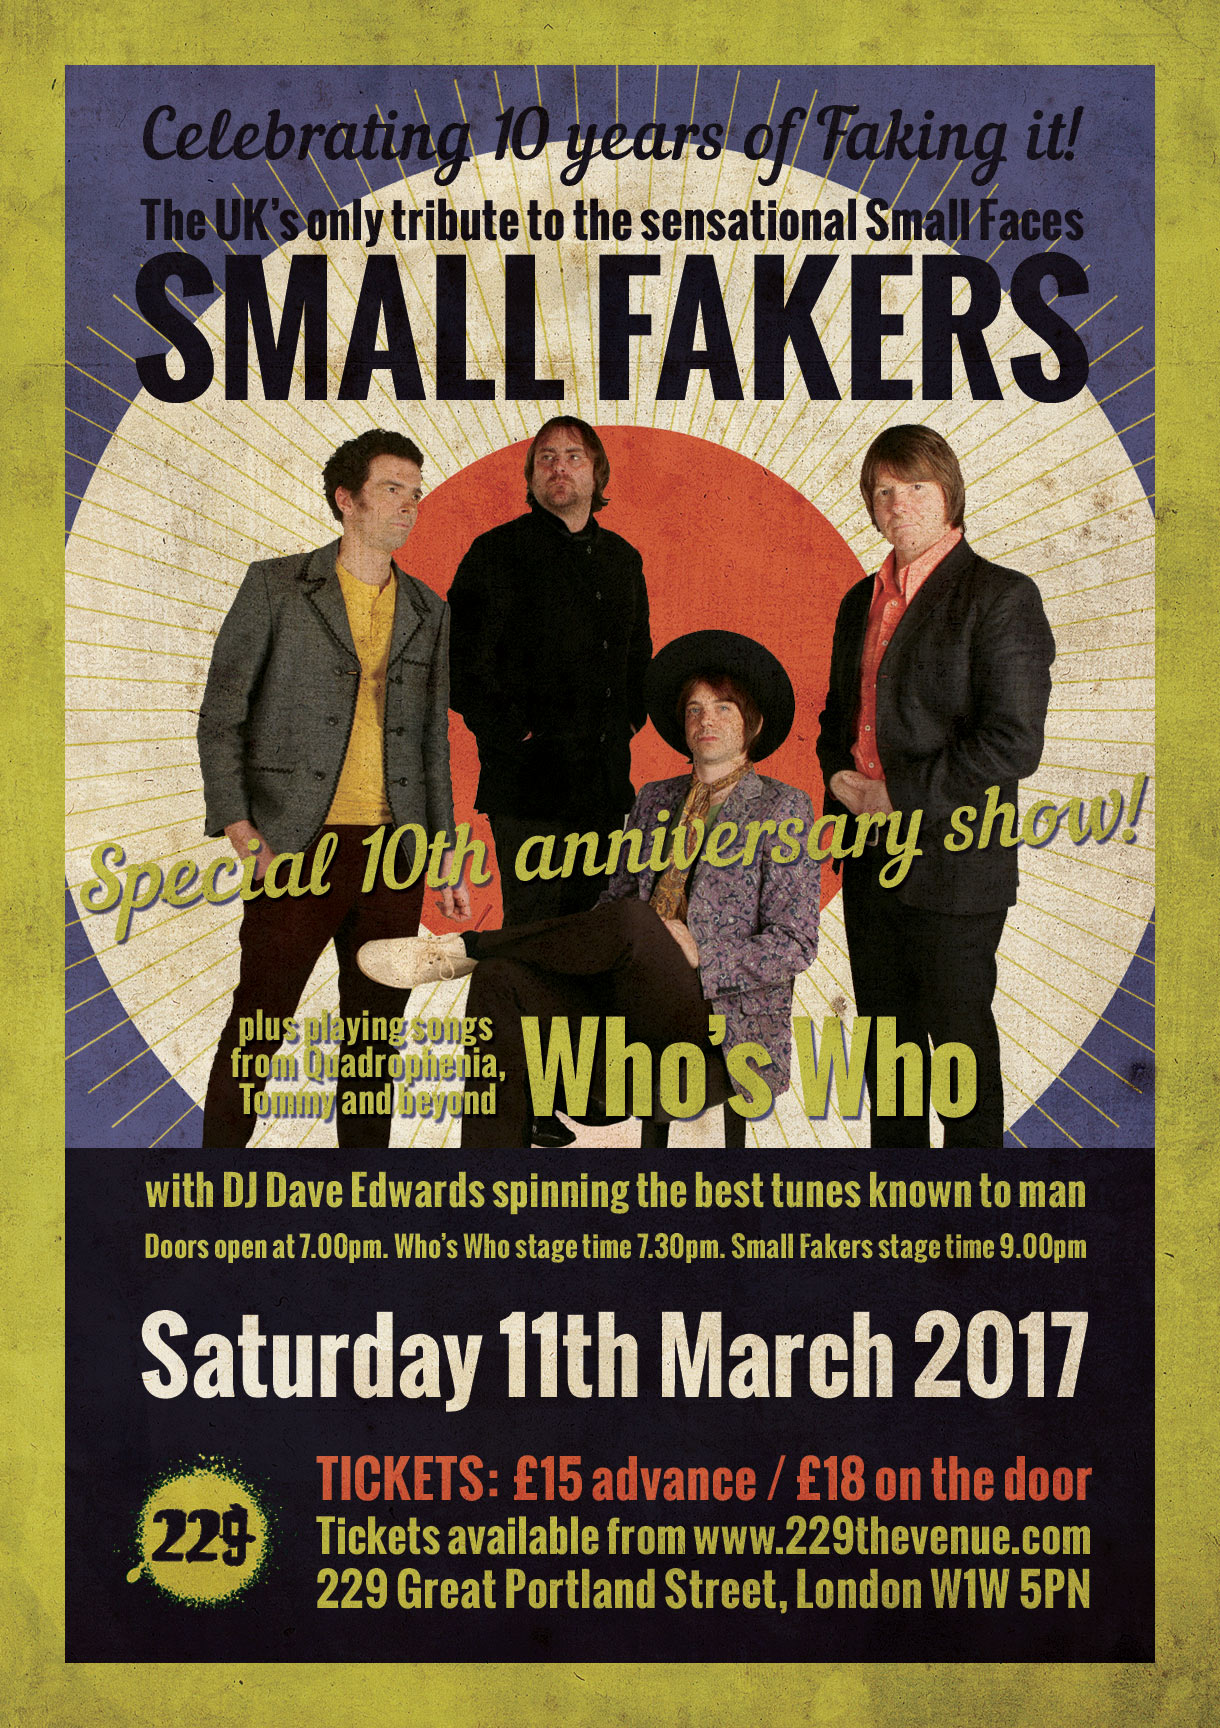 Small faces tribute Small Fakers at Dingwalls Camden